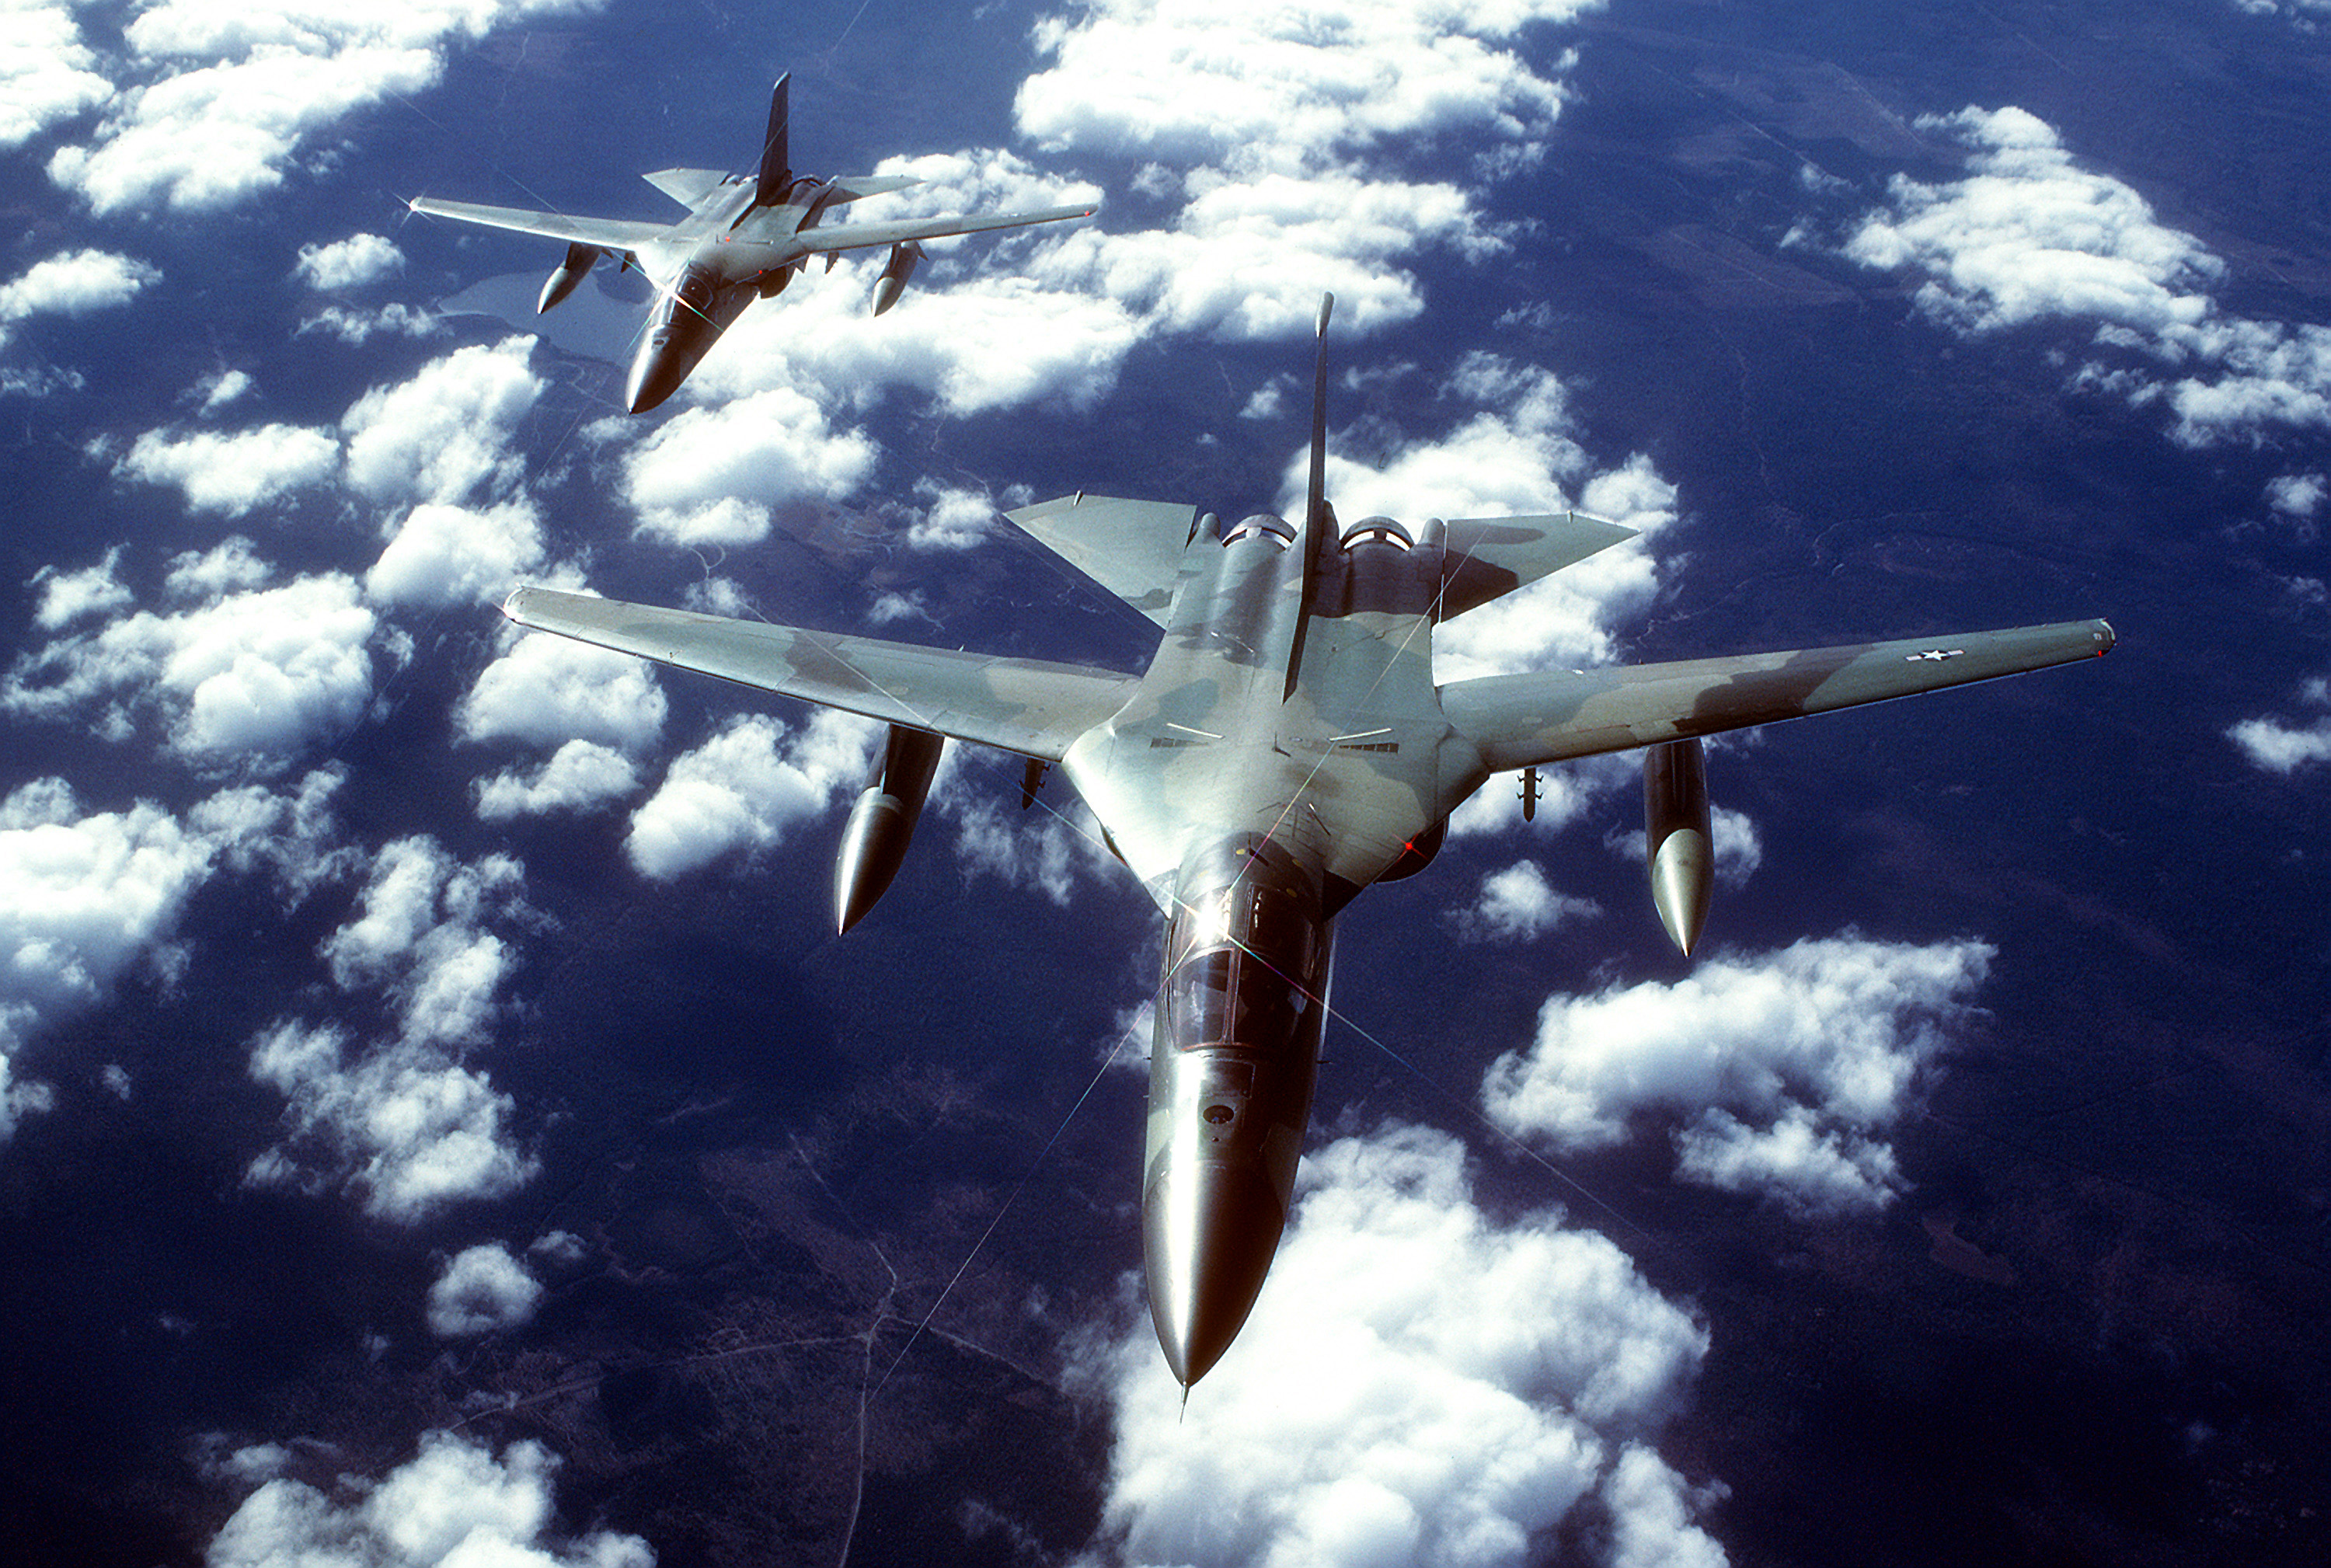 Military - General Dynamics F-111 Aardvark  - Fb-111 - Aardvark Wallpaper